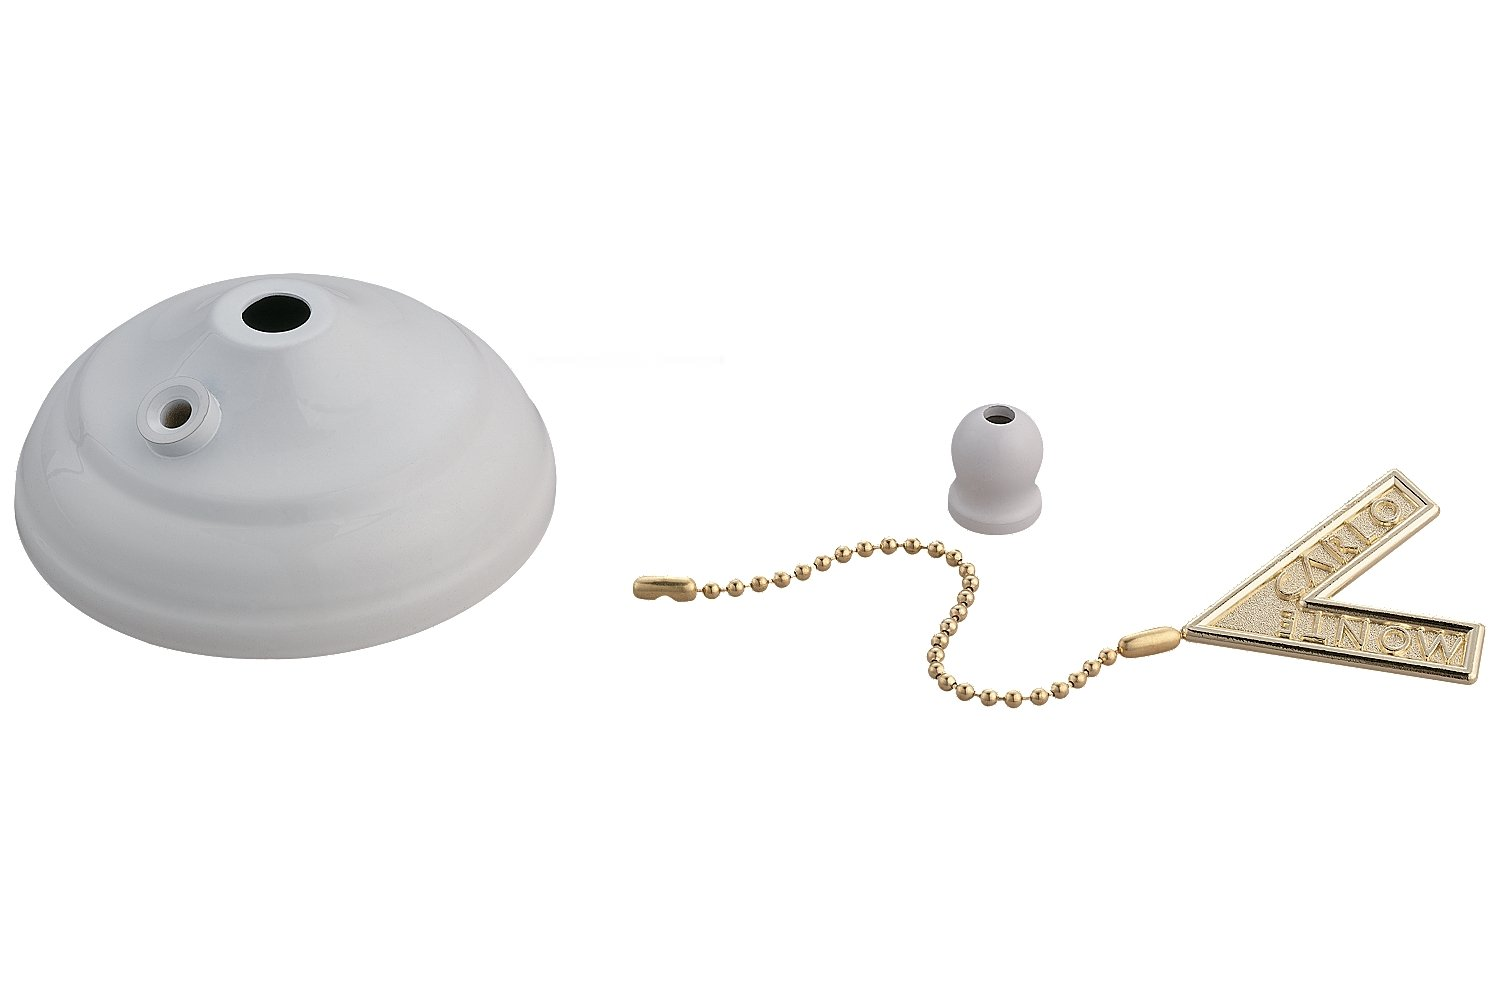 Monte Carlo MC83WH Ceiling Fan Pull Chain Type Bowl Cap Kit, White